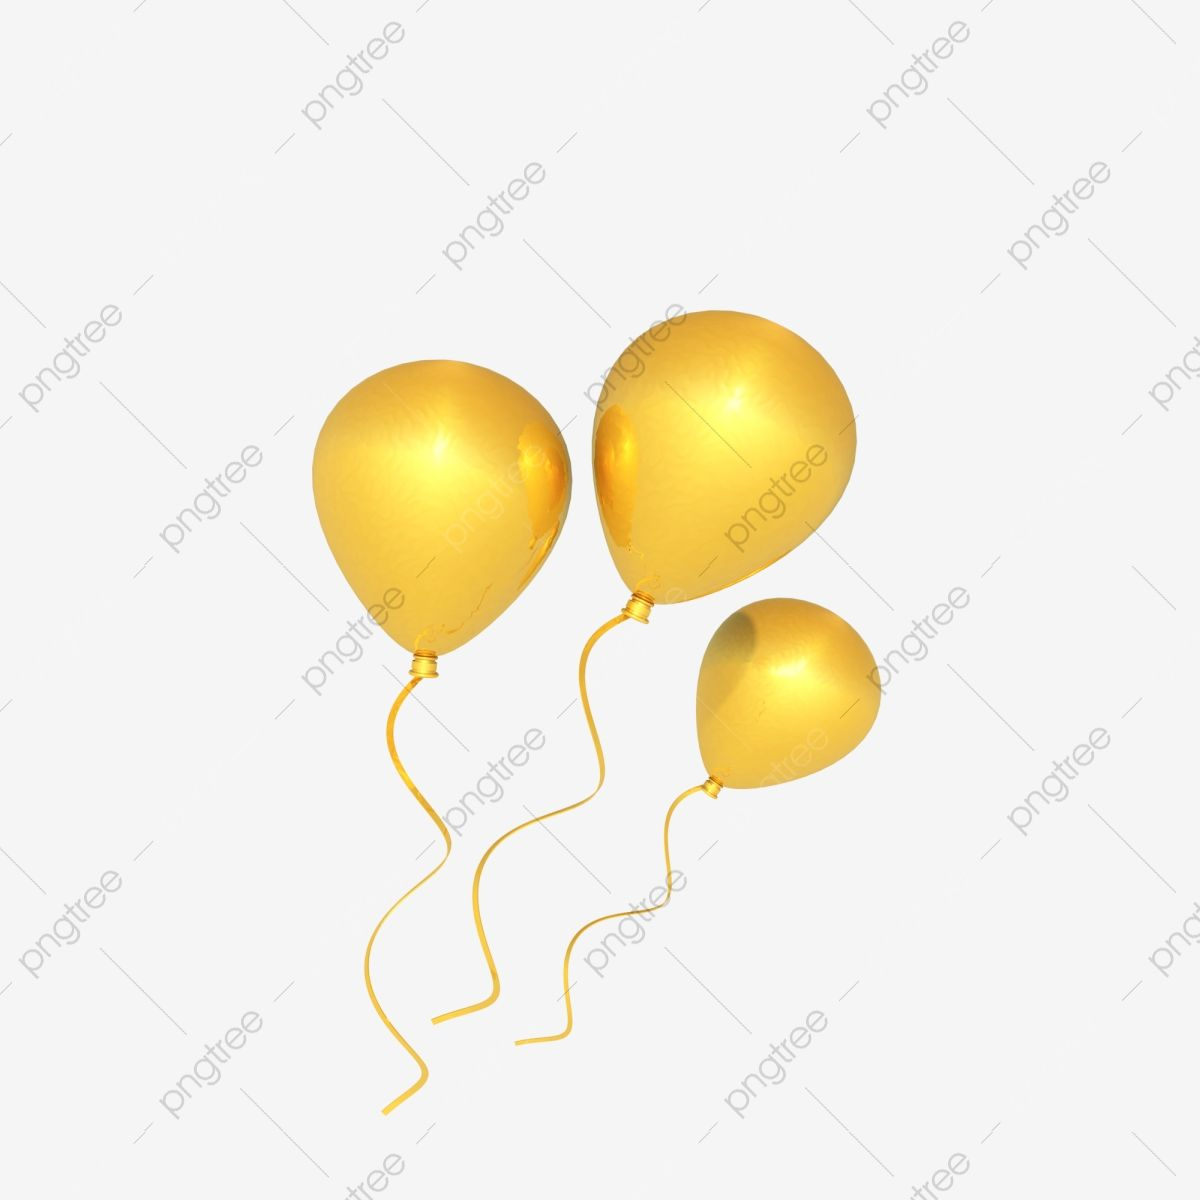 Yellow Balloon Free Illustration 3d Balloons Anime Balloons Beautiful Decorative Balloons Png Transparent Clipart Image And Psd File For Free Download Yellow Balloons Free Illustrations Clip Art